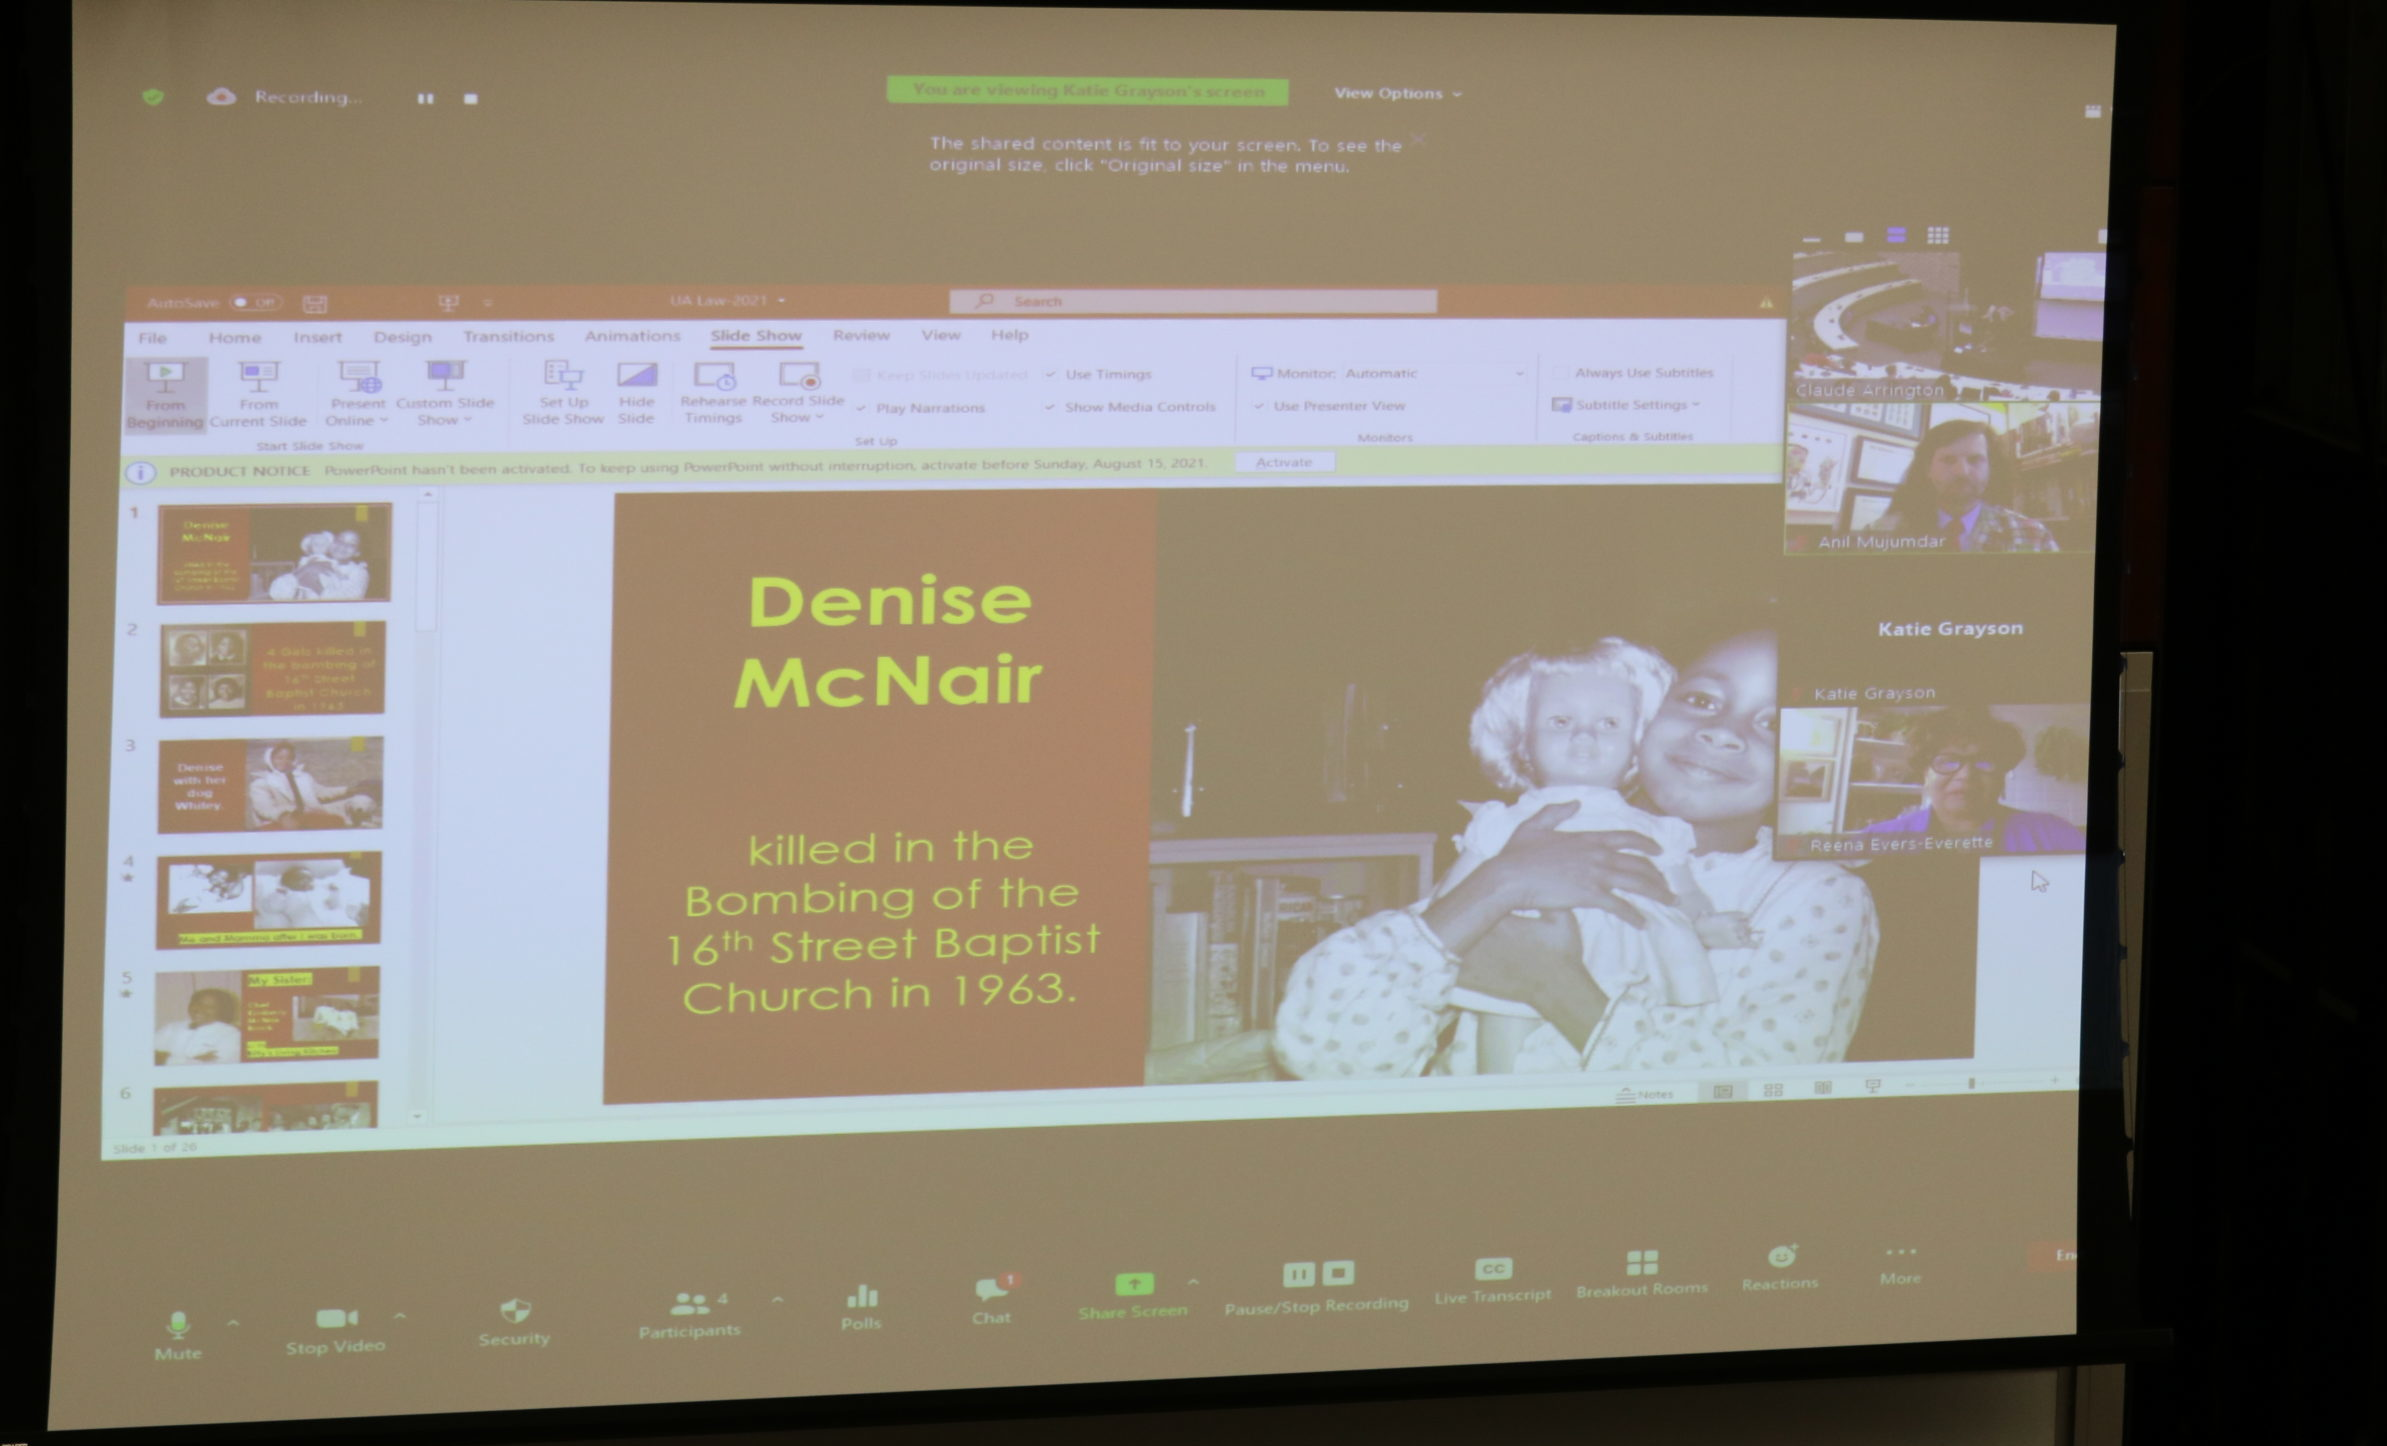 Presentation slide of Denis McNair who was killed in the Bombing of the 16th Street Baptist Church in 1963.